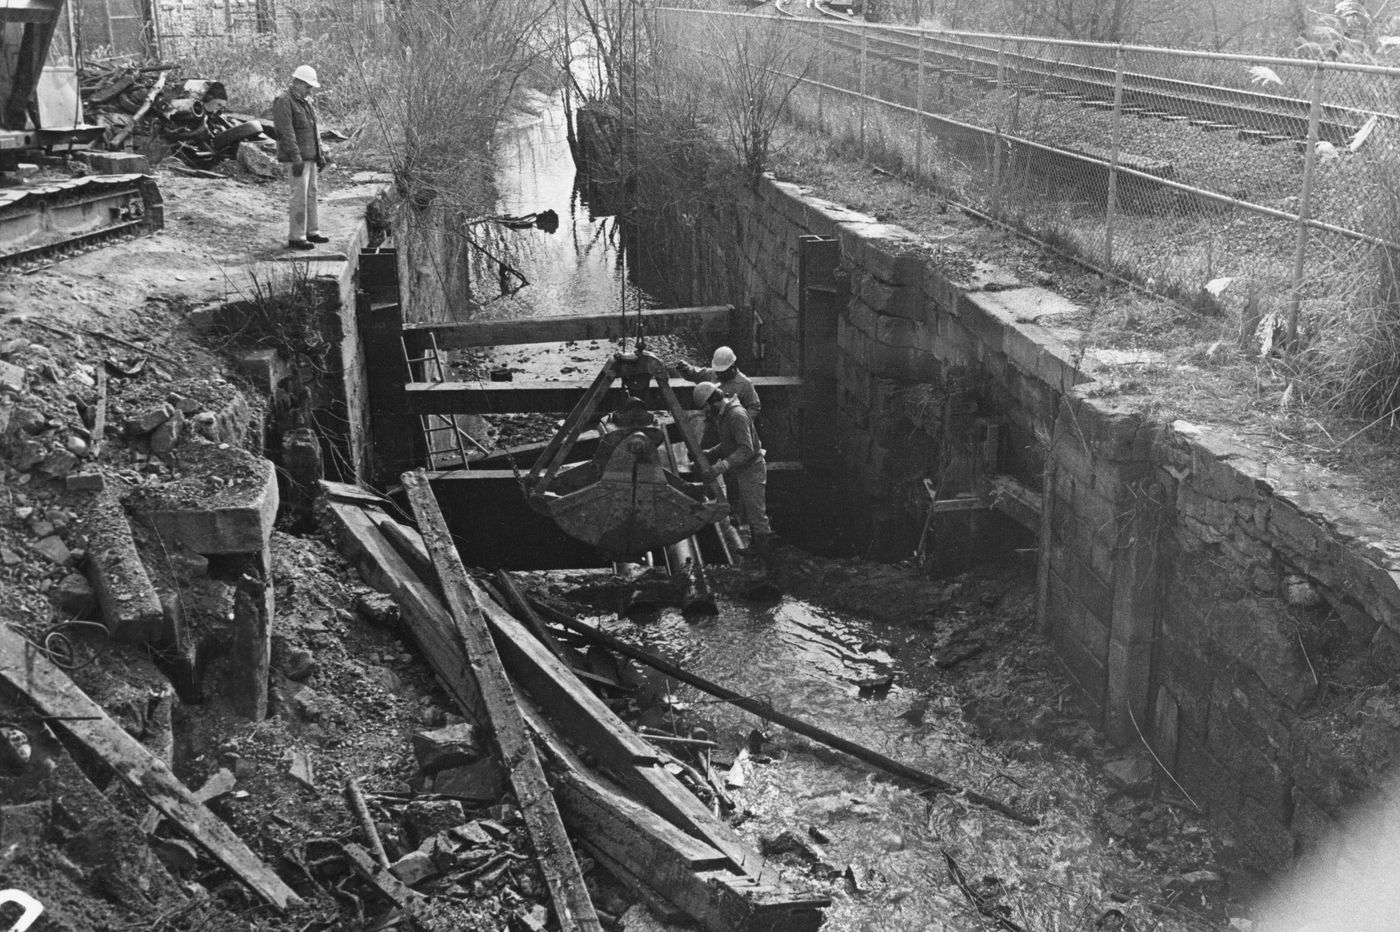 The Manayunk Canal almost became the Manayunk Expressway. Here's how it was saved.